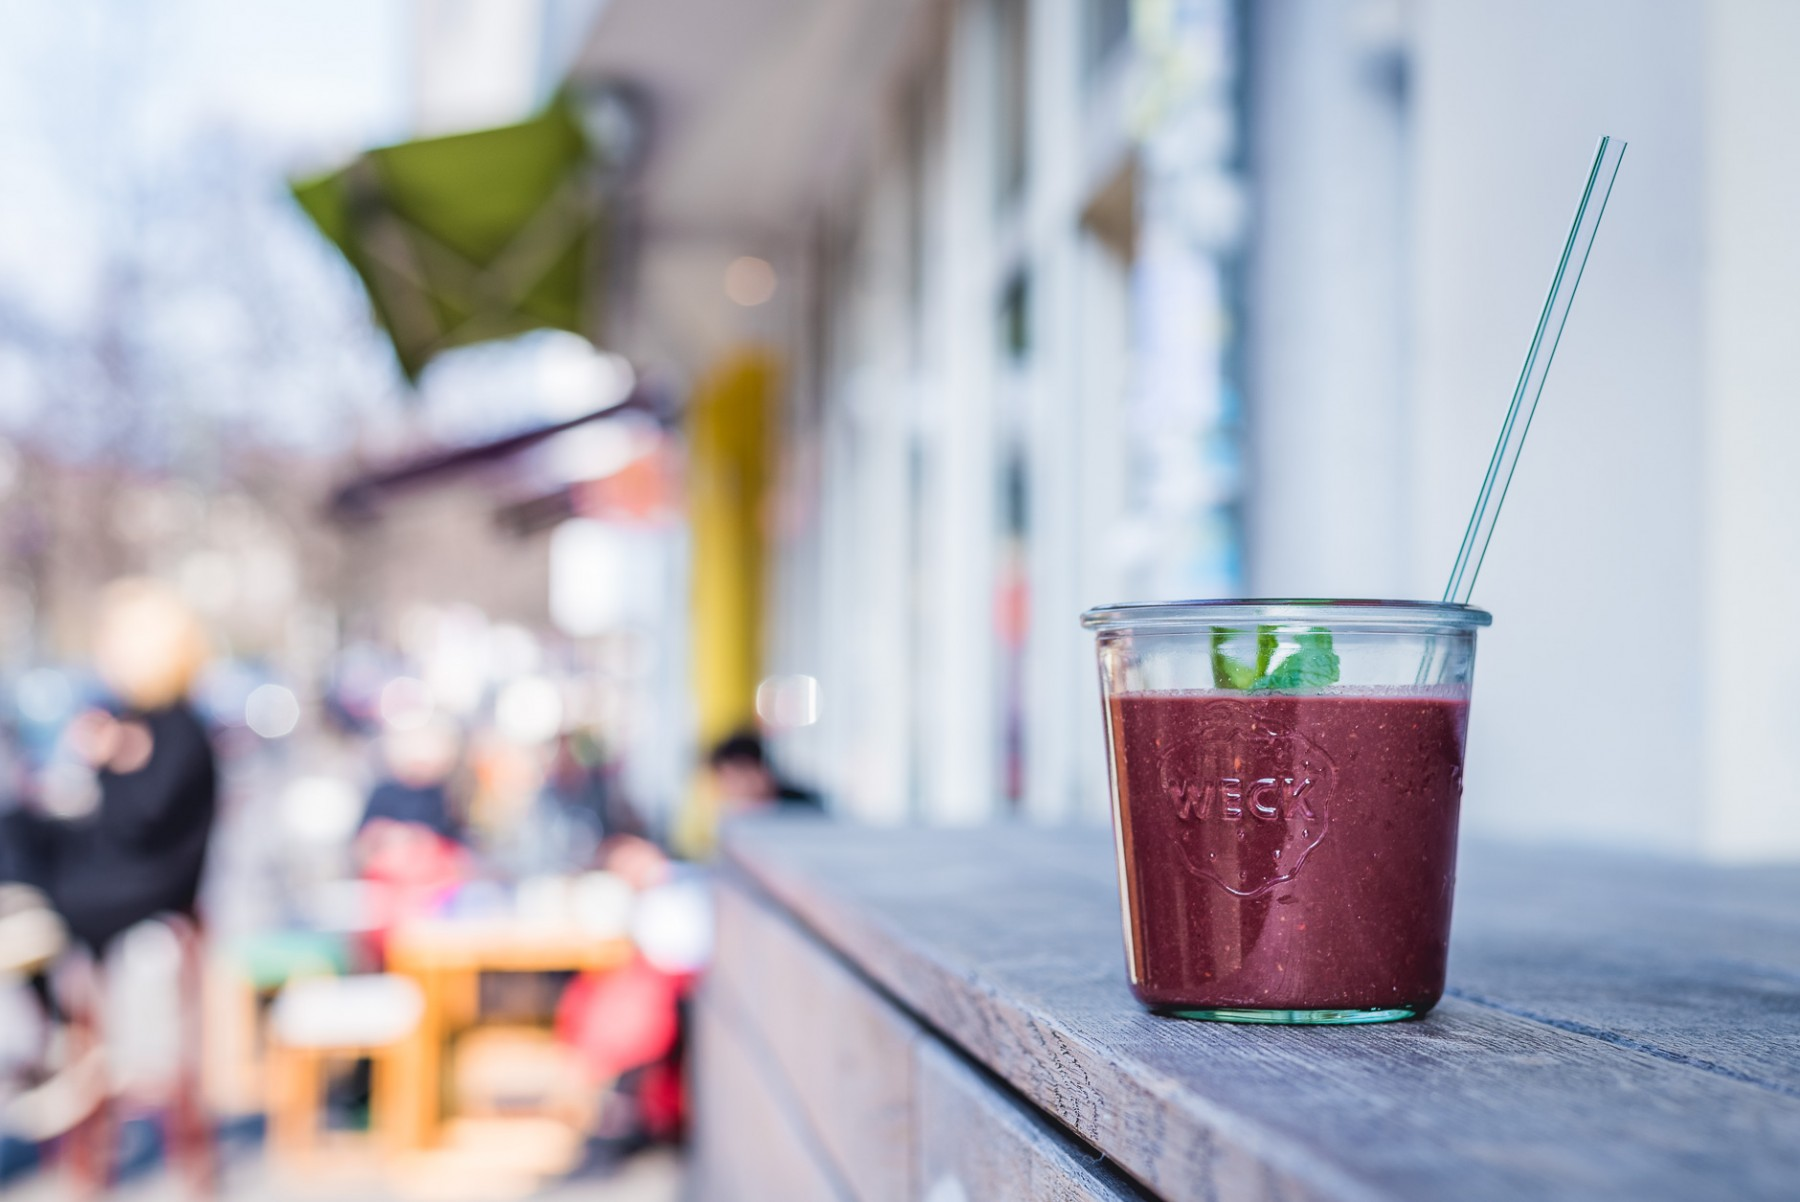 Smoothie in Berlin, Germany